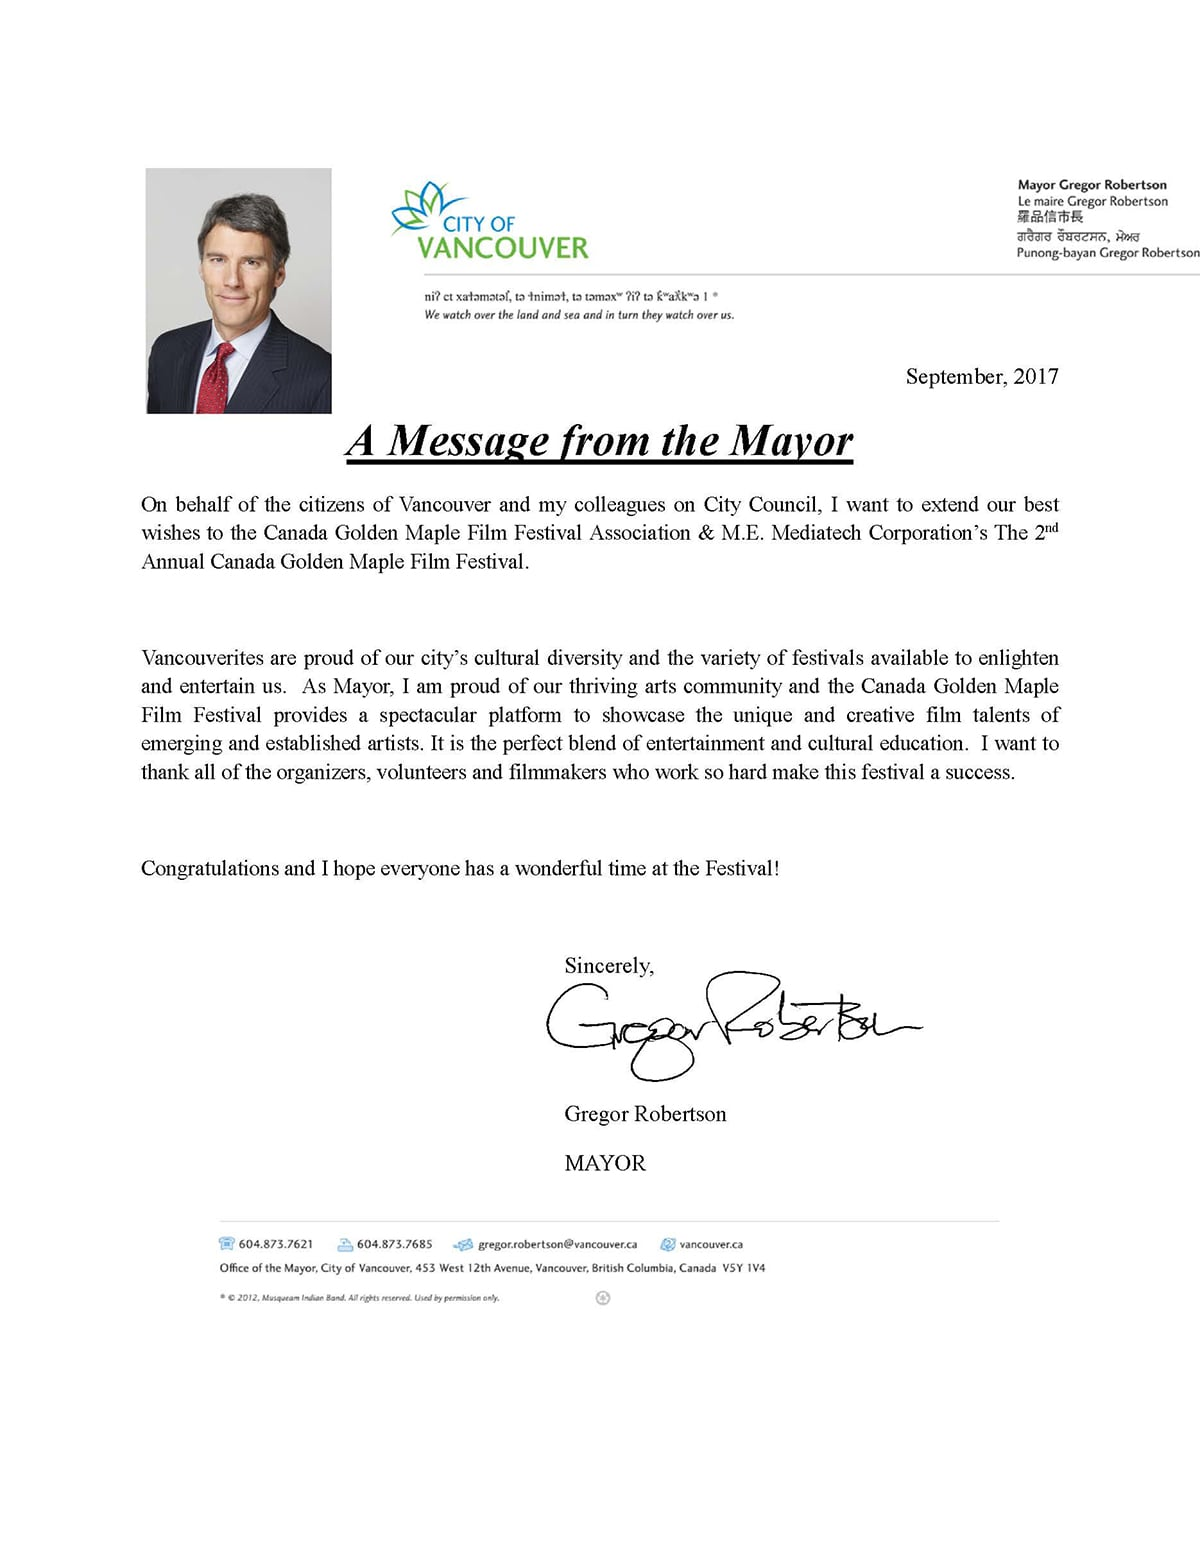 Congratulatory Letter from Gregor Robertson, Mayor of Vancouver